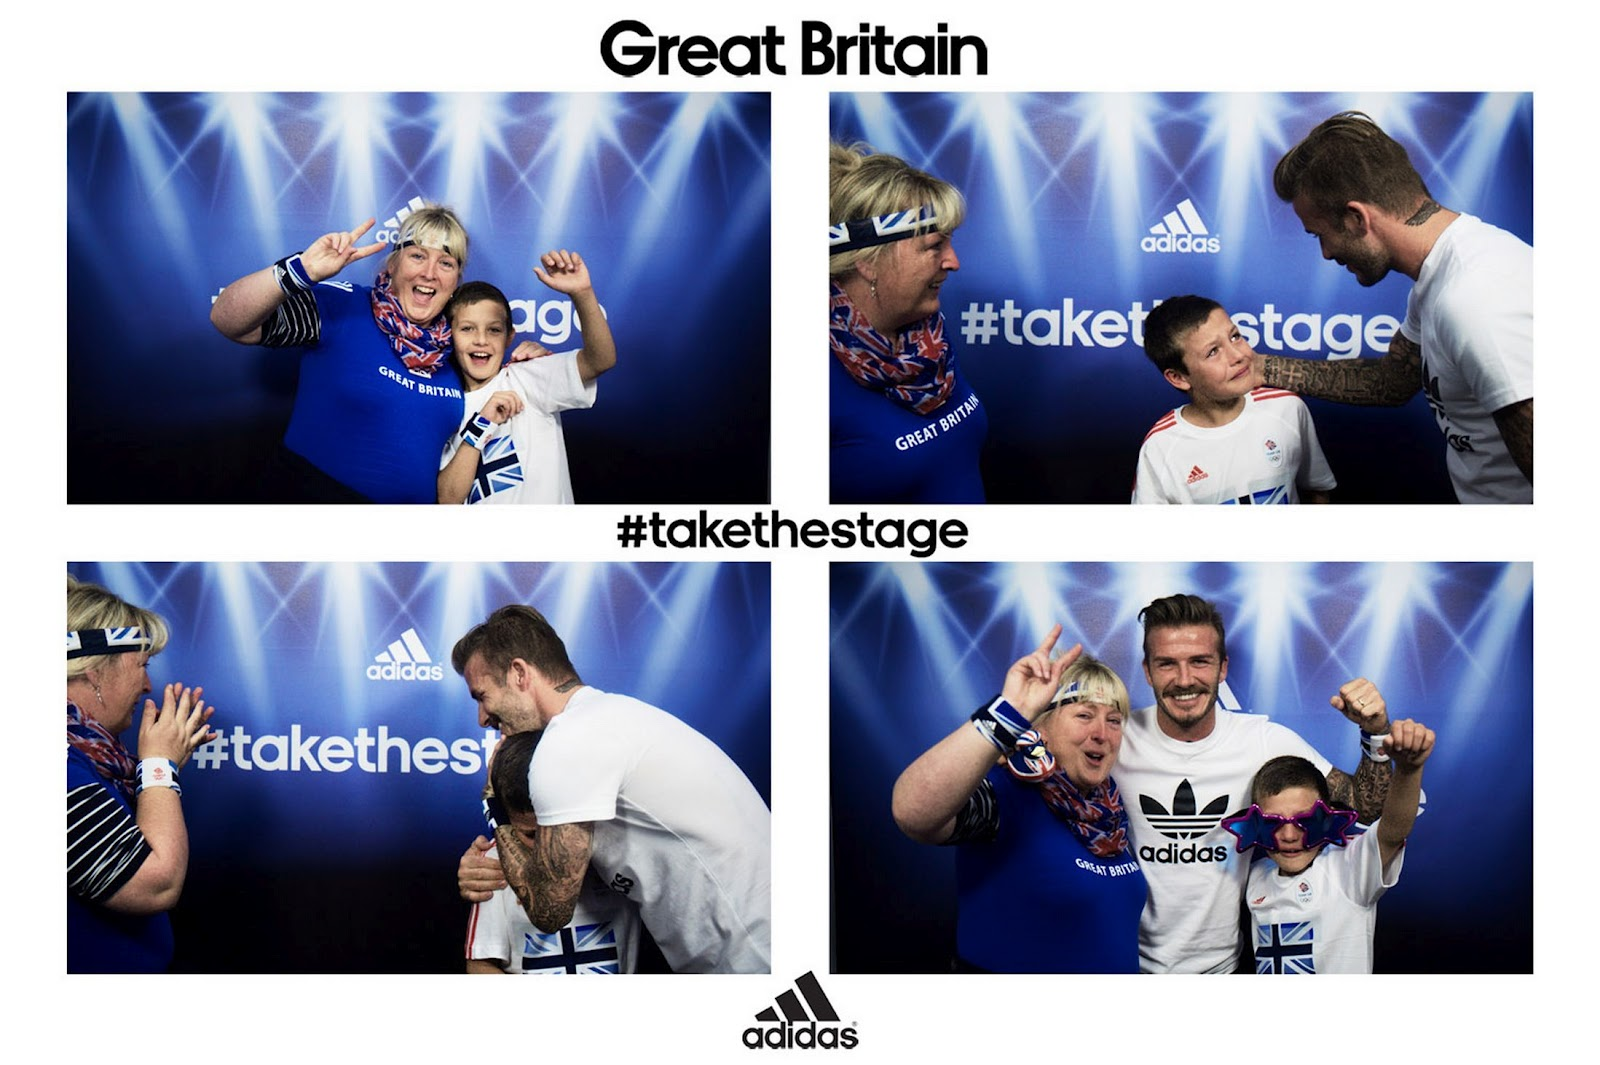 http://2.bp.blogspot.com/-B7JZdnPwhp0/UA6df1-oekI/AAAAAAAAKyA/VCdmXSF7jsg/s1600/David+Beckham+pops+up+at+the+Adidas+photobooth.jpg